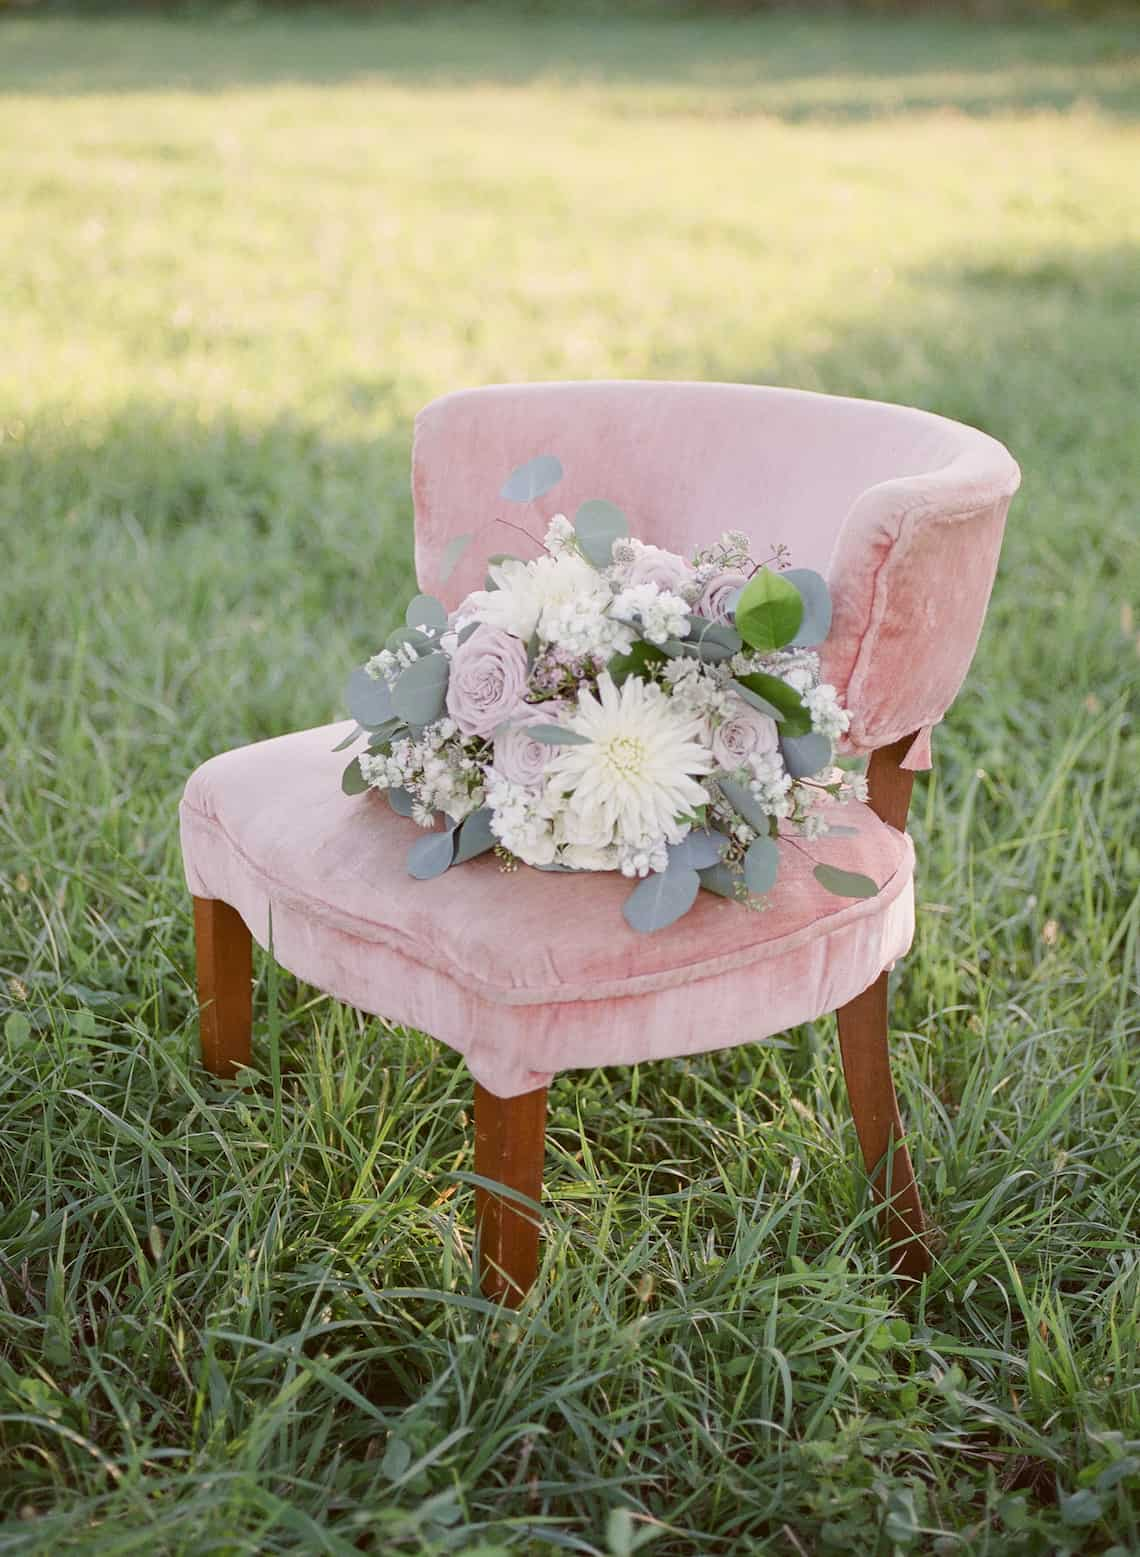 Soft Toned Bride Bouquet in Chair